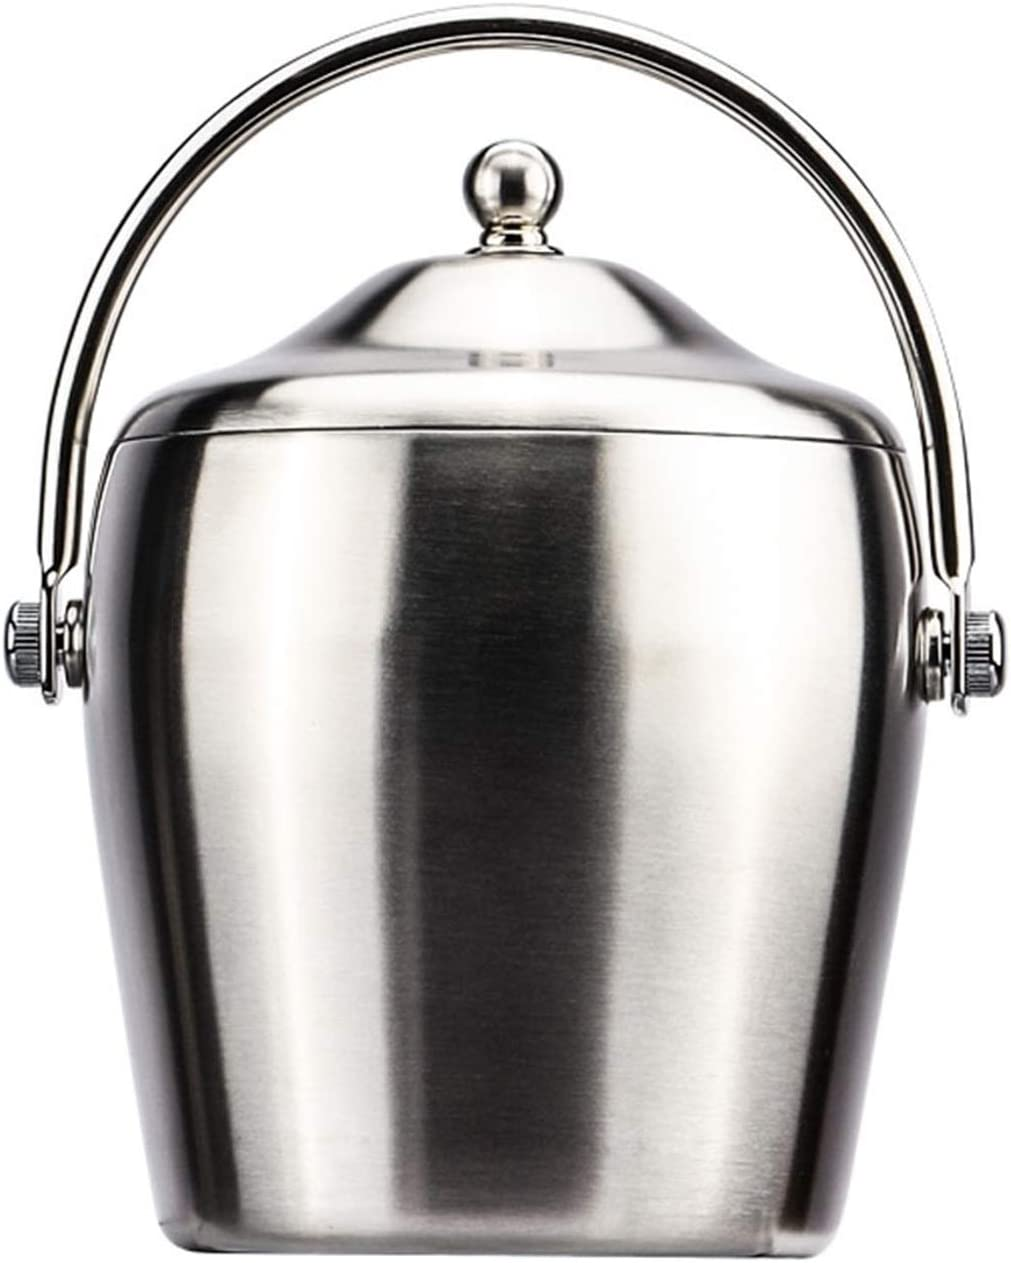 UXZDX Kansas City Mall Ice Bucket with Cheap bargain Lid And Strainer Made Steel Stainless Well